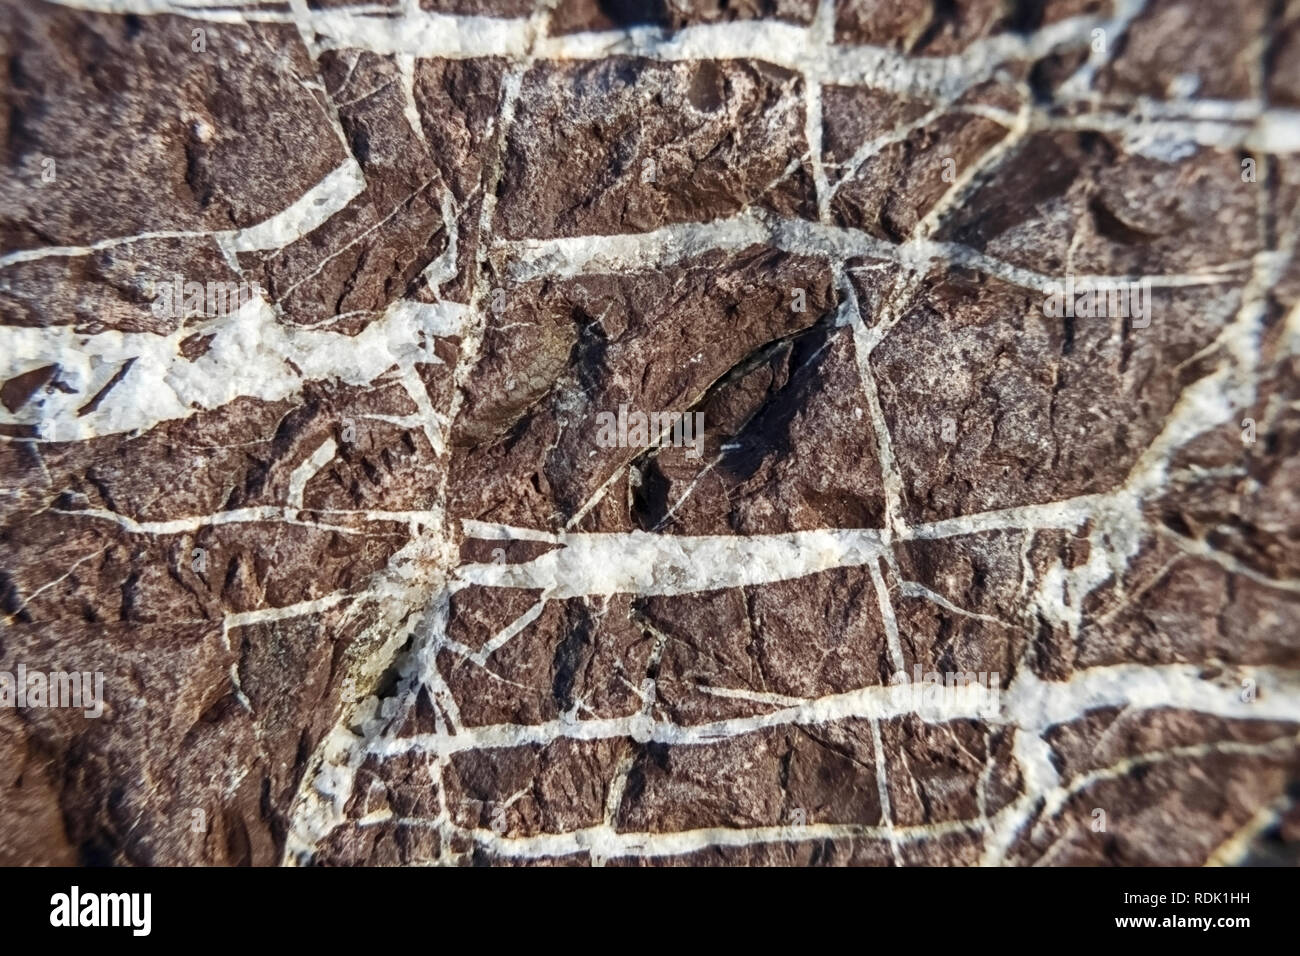 Texture curb stone with white veins – macrophoto - Stock Image